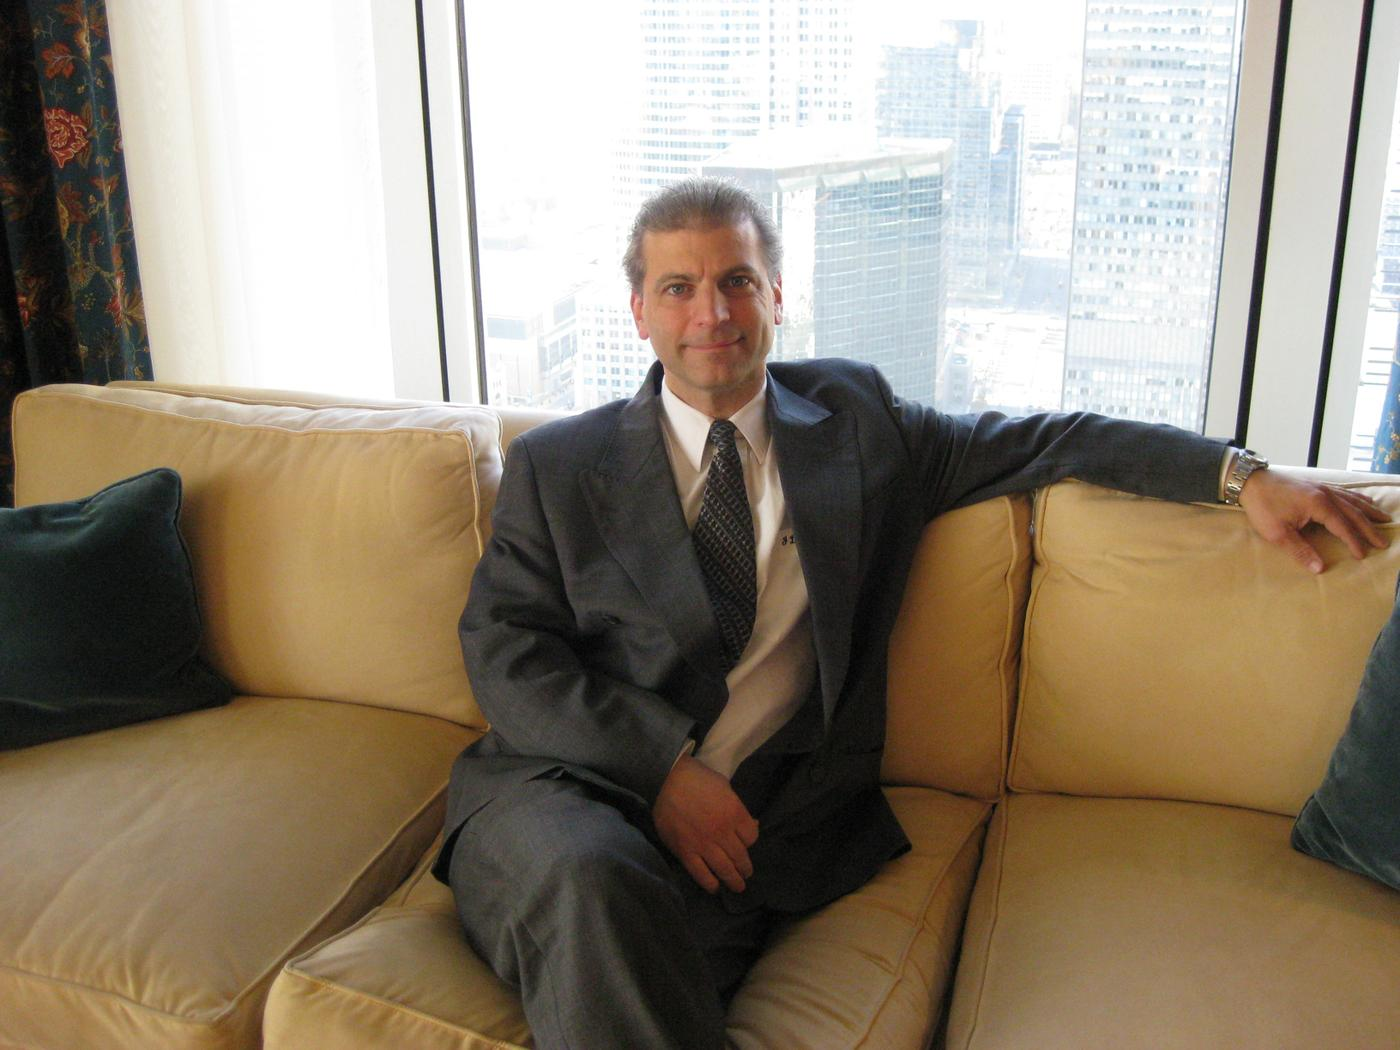 James D. Roumeliotis